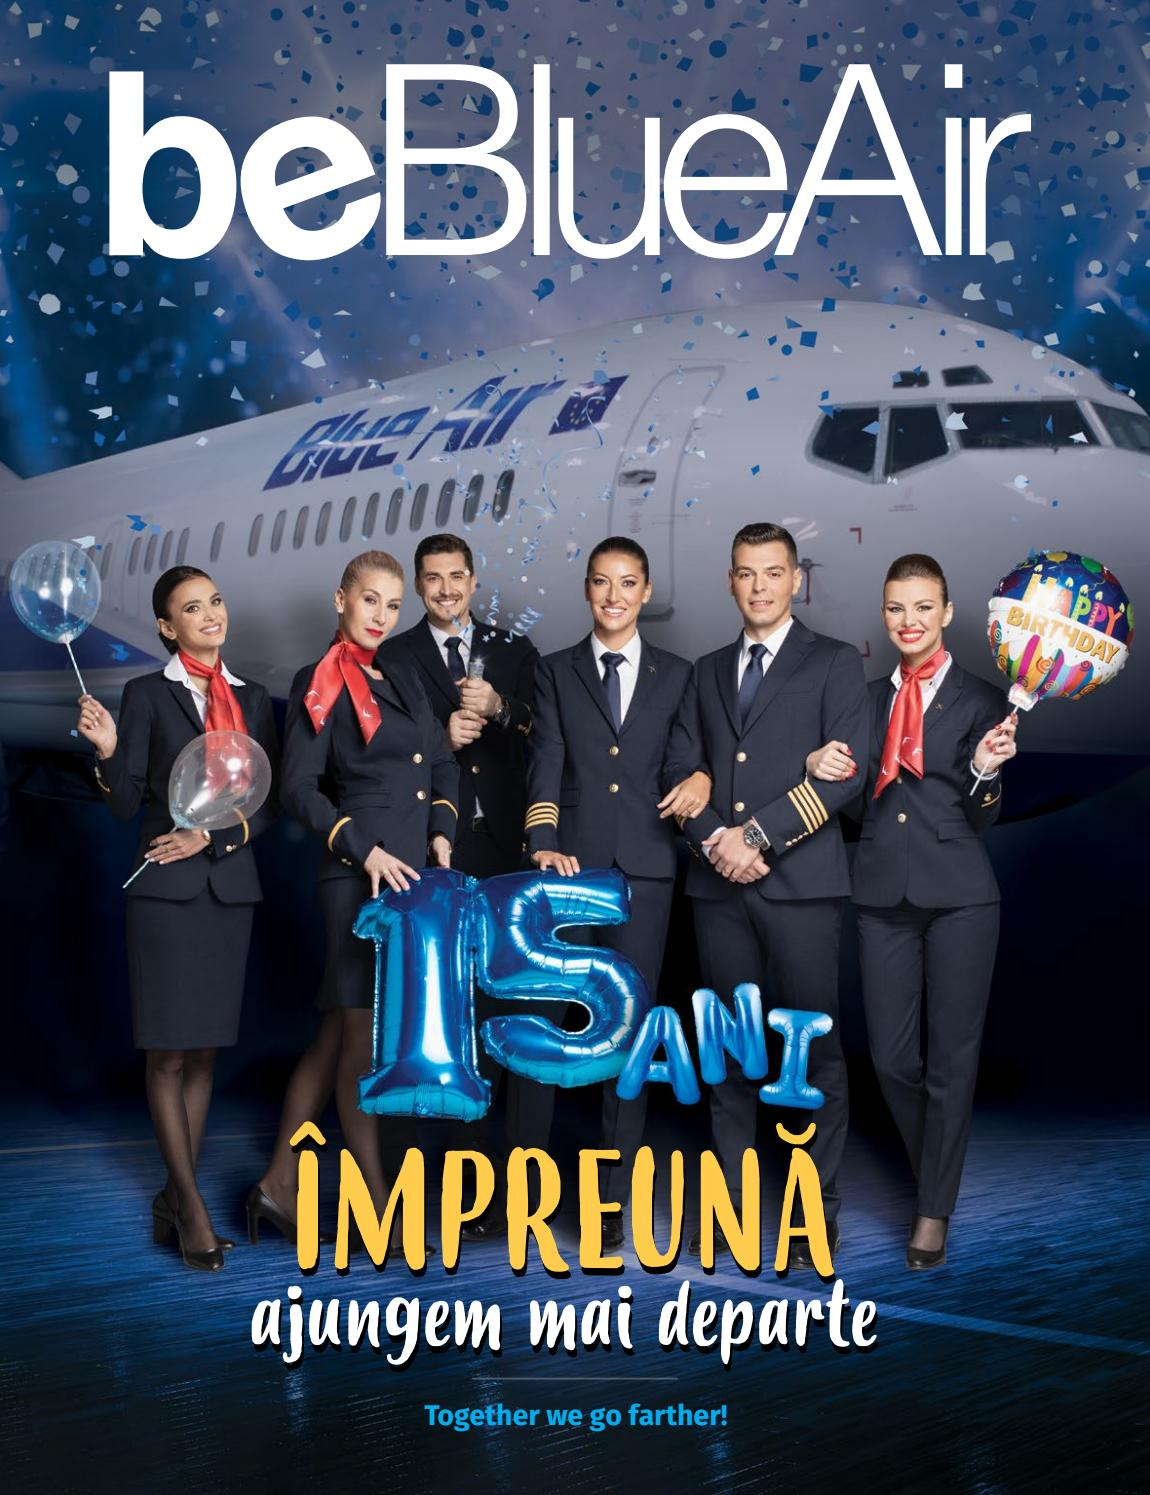 Beblueair Inflight Magazine Blue Air Romania No 52 By Blue Air Issuu